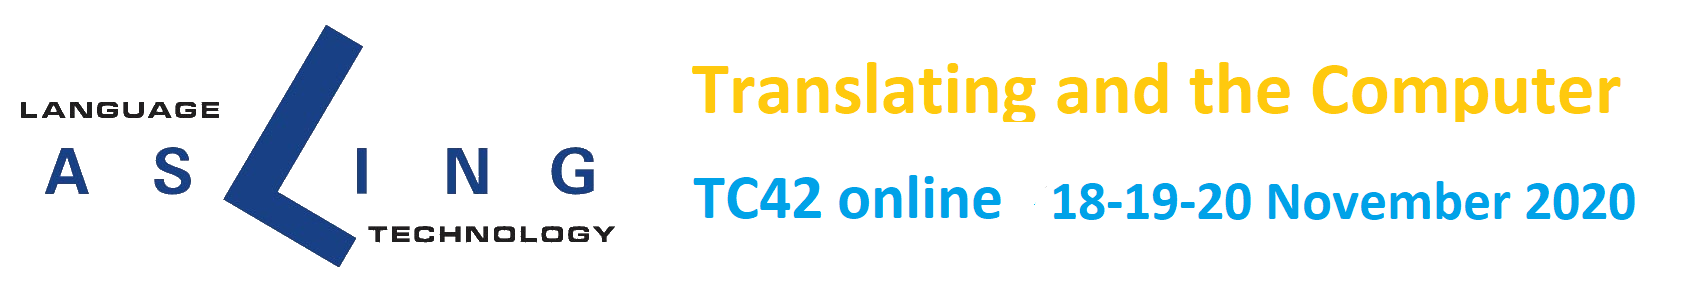 Translating and the Computer 42